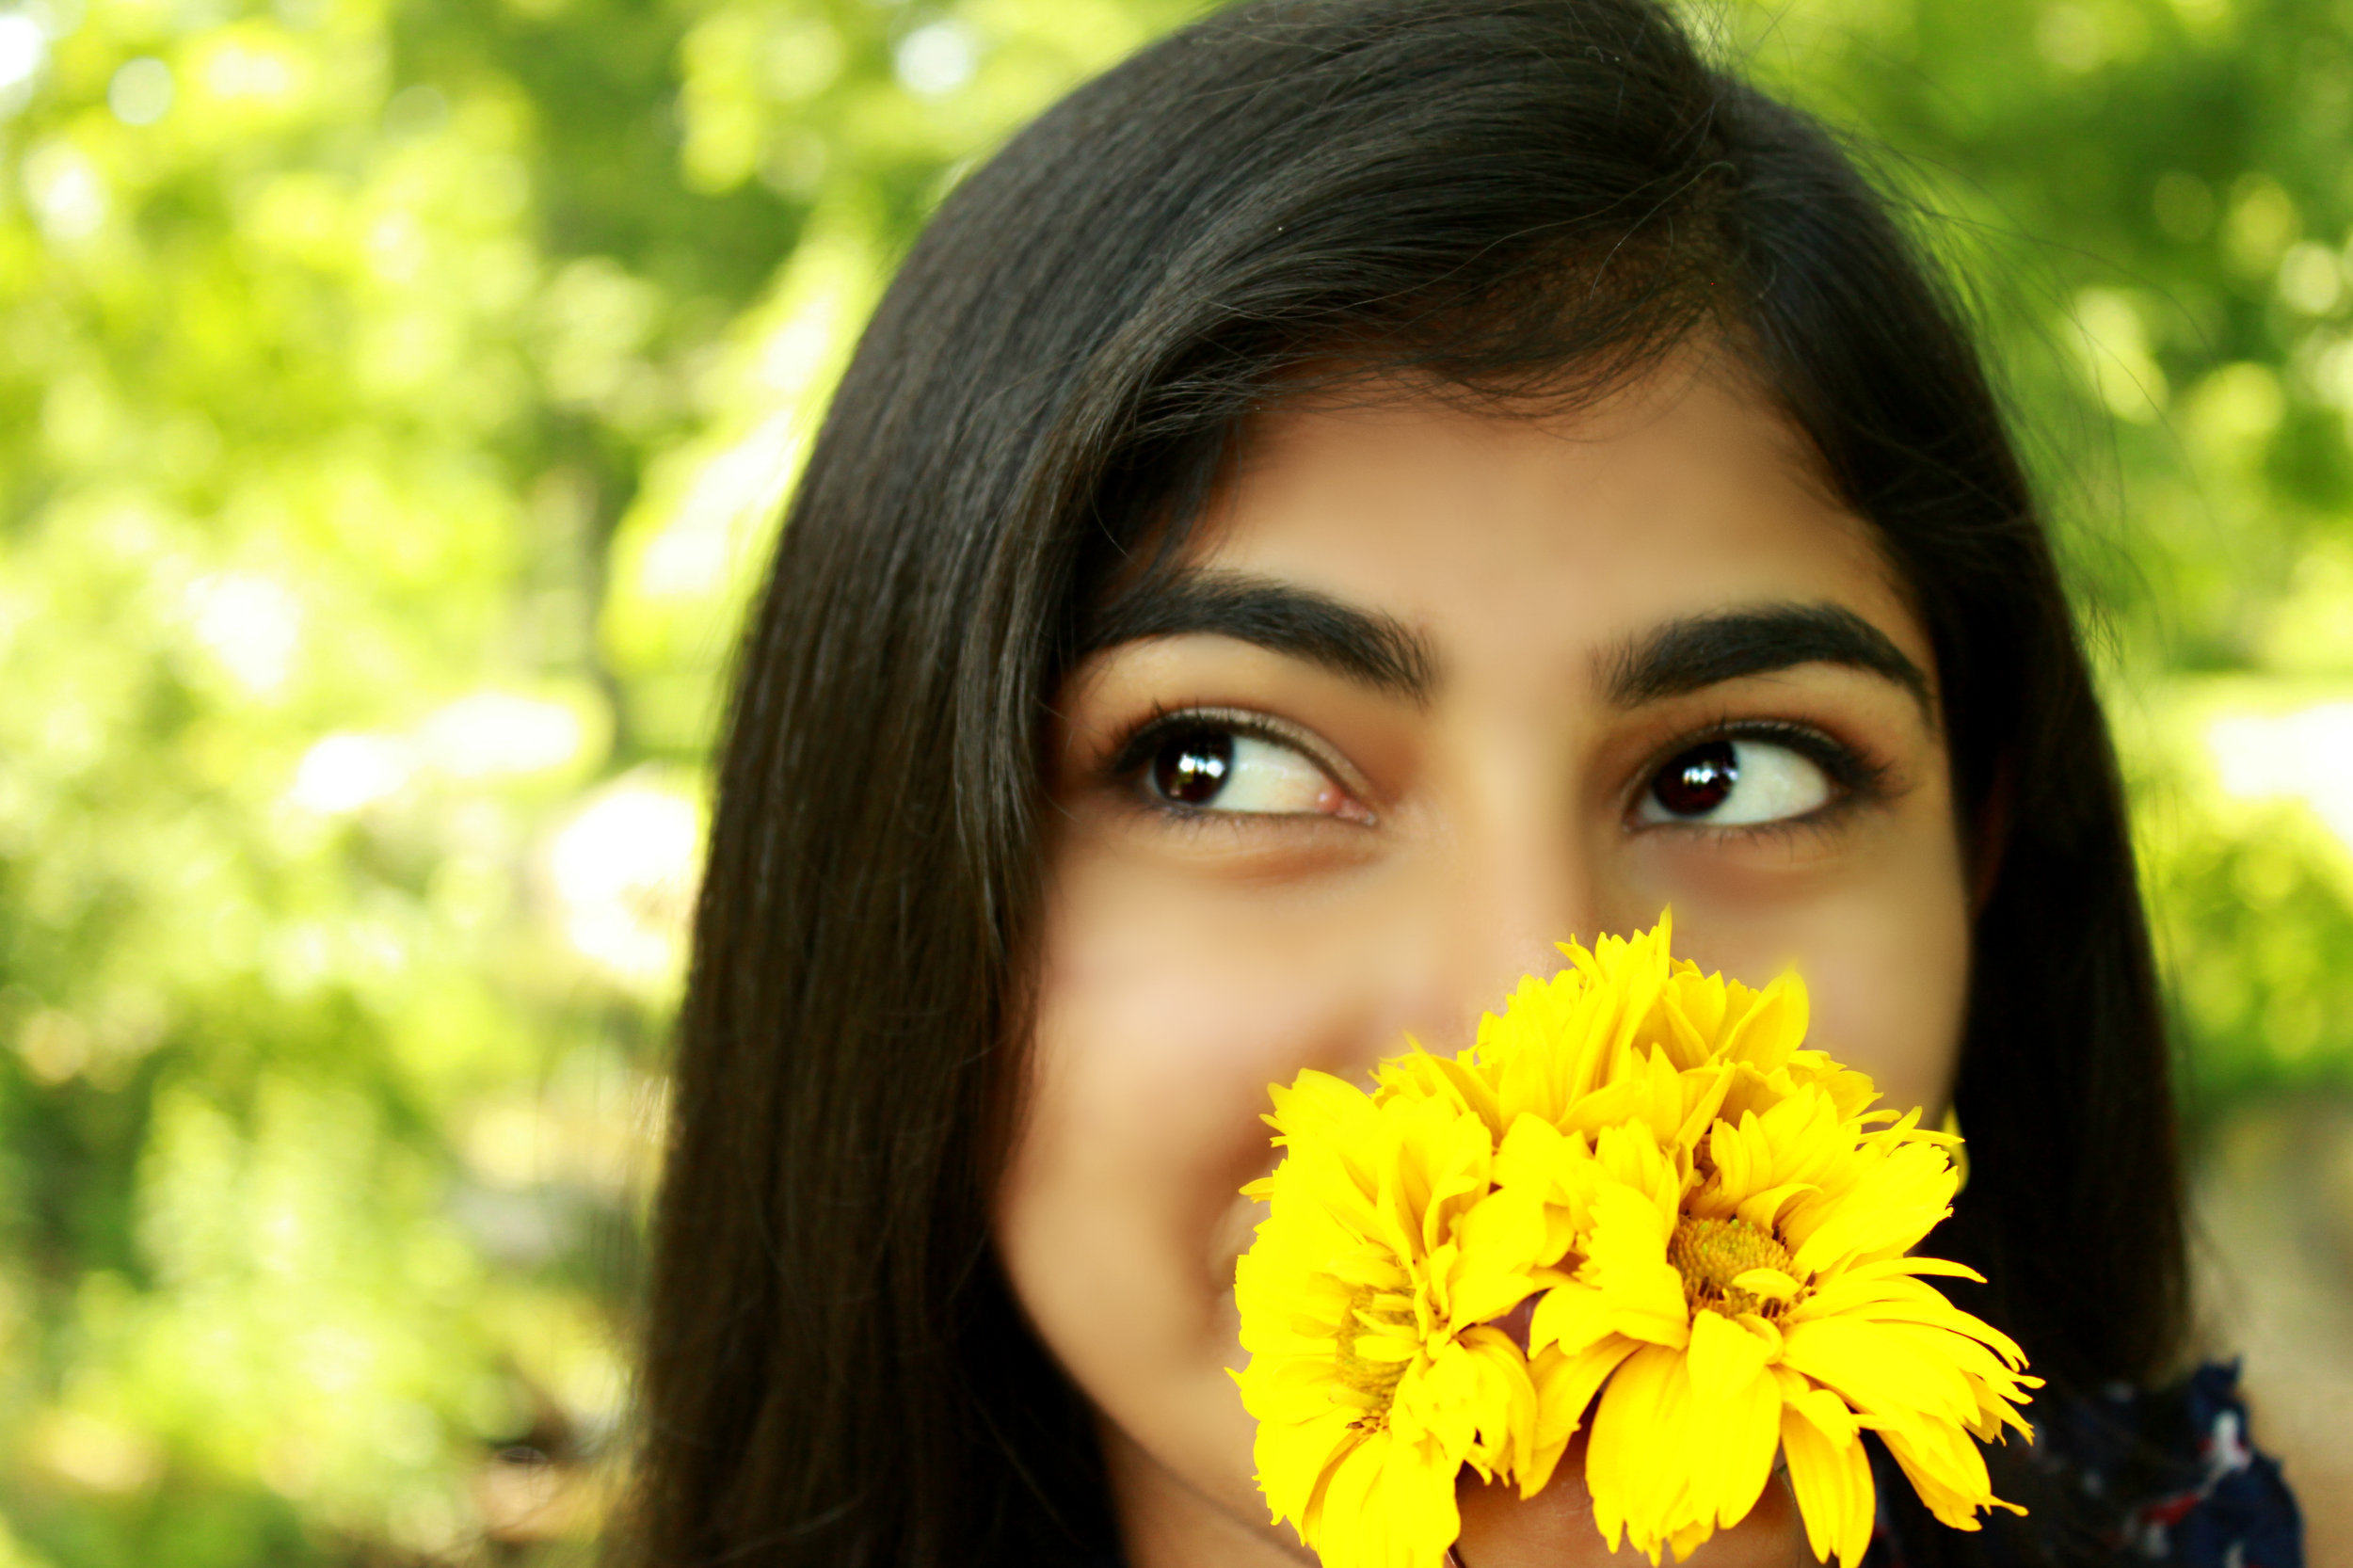 Oh hey there! - My name is Reetu Shah, and I am here to make your visions come to life!